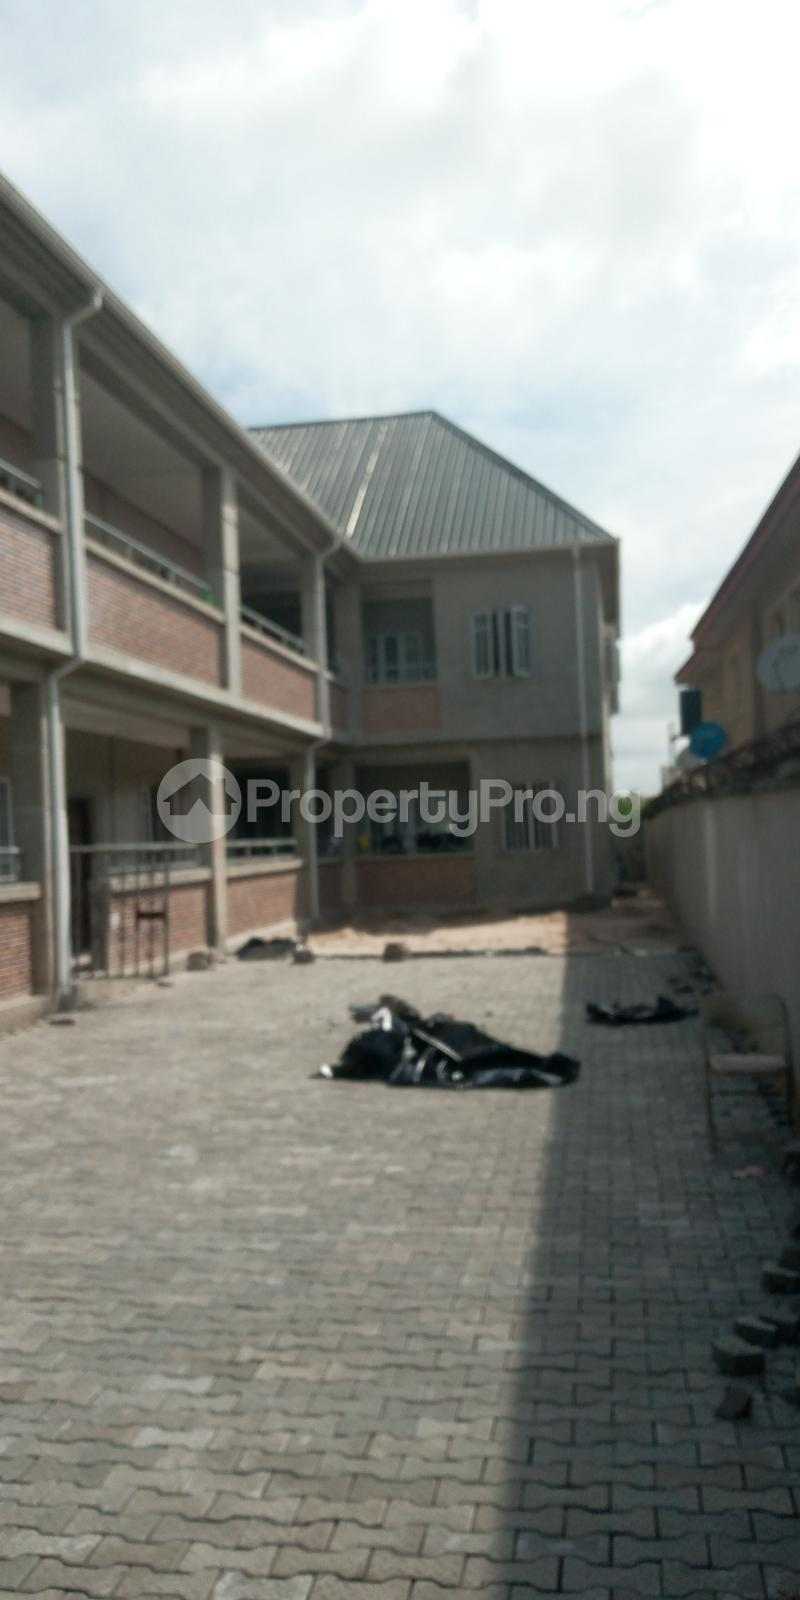 School Commercial Property for sale Eputu Ibeju-Lekki Lagos - 2